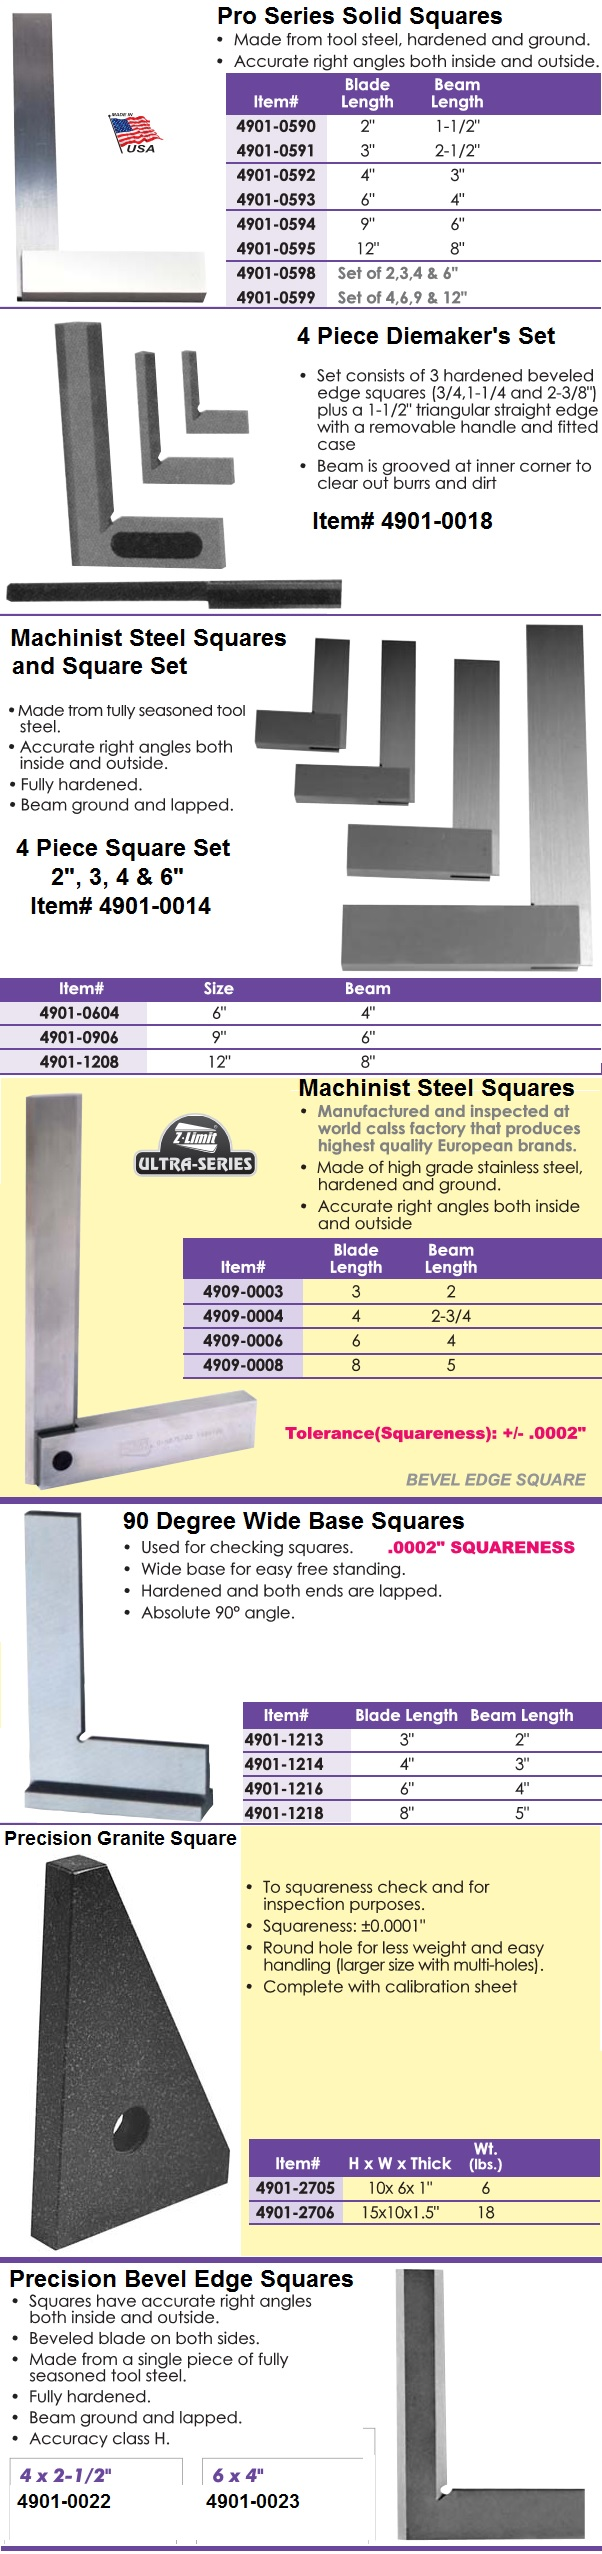 Squares, Machinists, Diemaker's, Precision Bevel,Granite, Wide Base individual and Sets ID 1120-